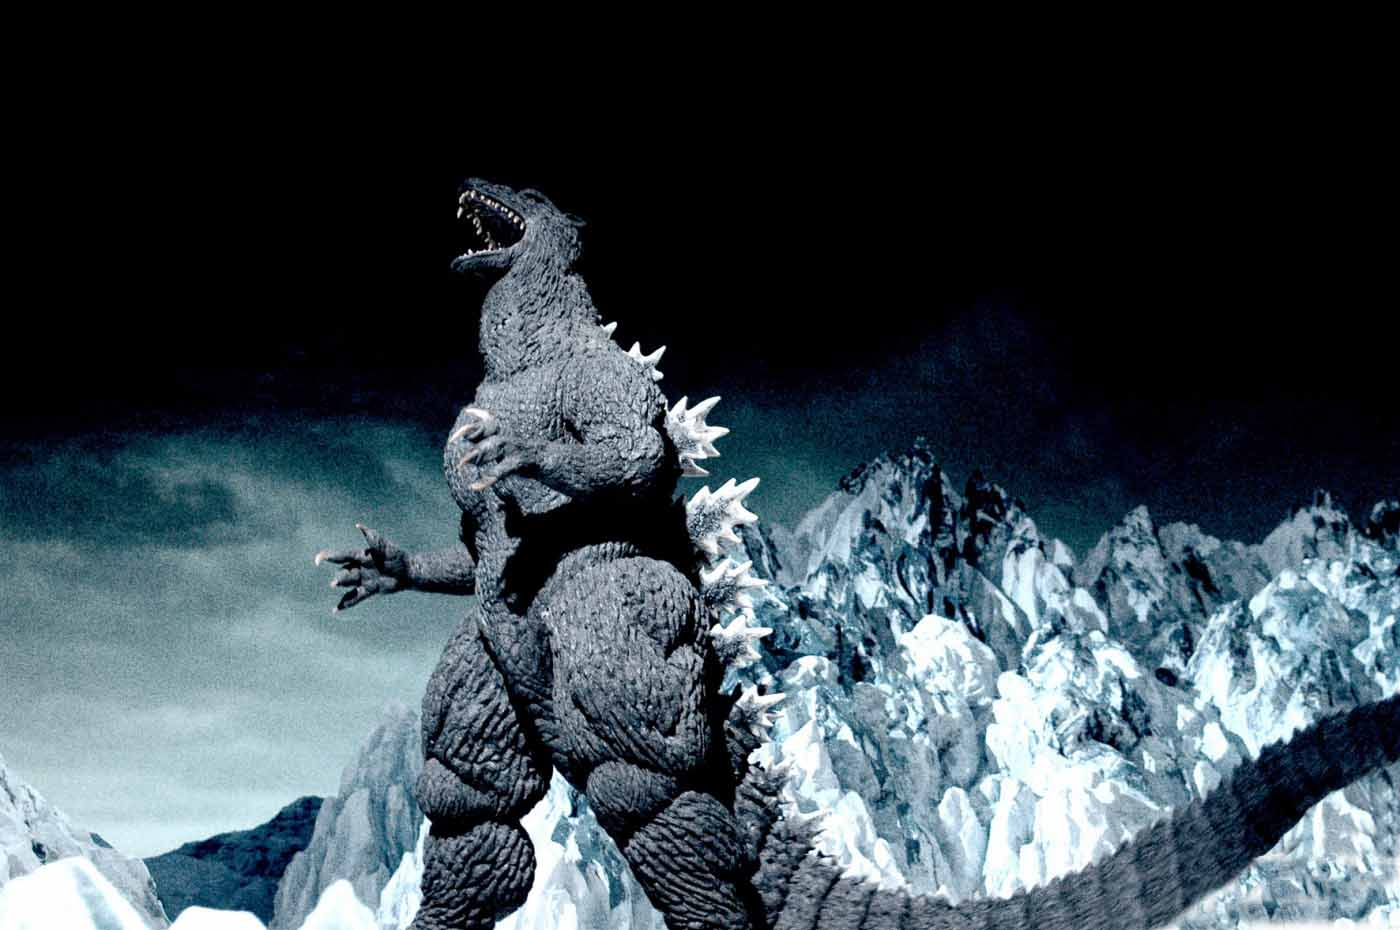 Godzilla roars to life in his last adventure.